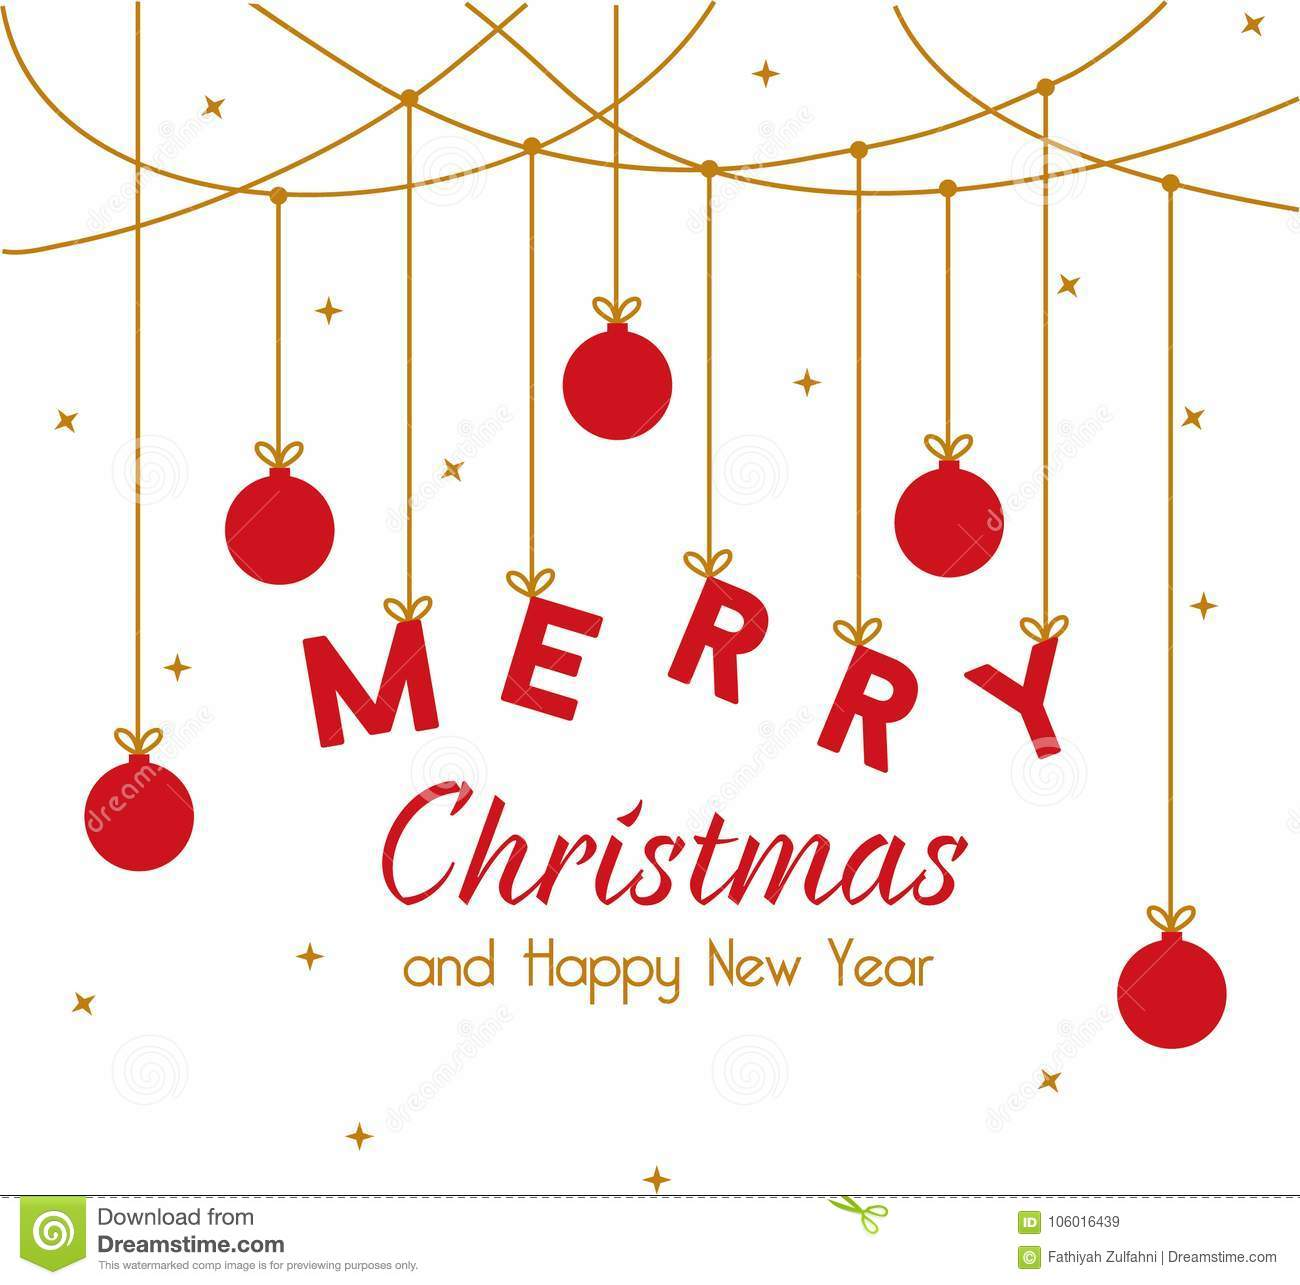 Merry Christmas And Happy New Year Stock Vector - Illustration of ...